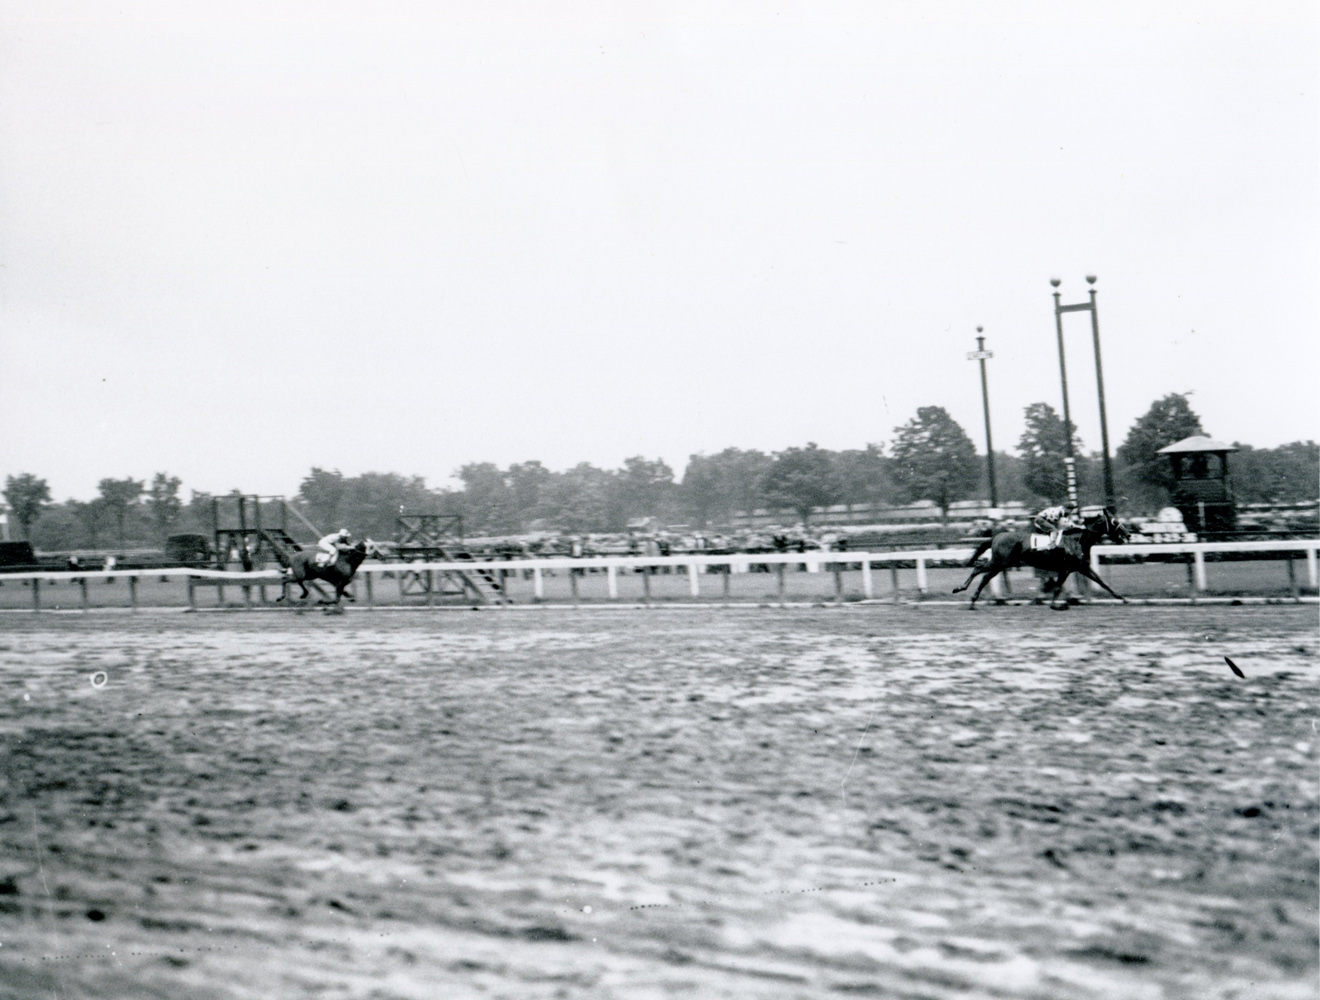 Granville (James Stout up) defeating Discovery in the 1936 Saratoga Cup by eight lengths (Keeneland Library Cook Collection/Museum Collection)